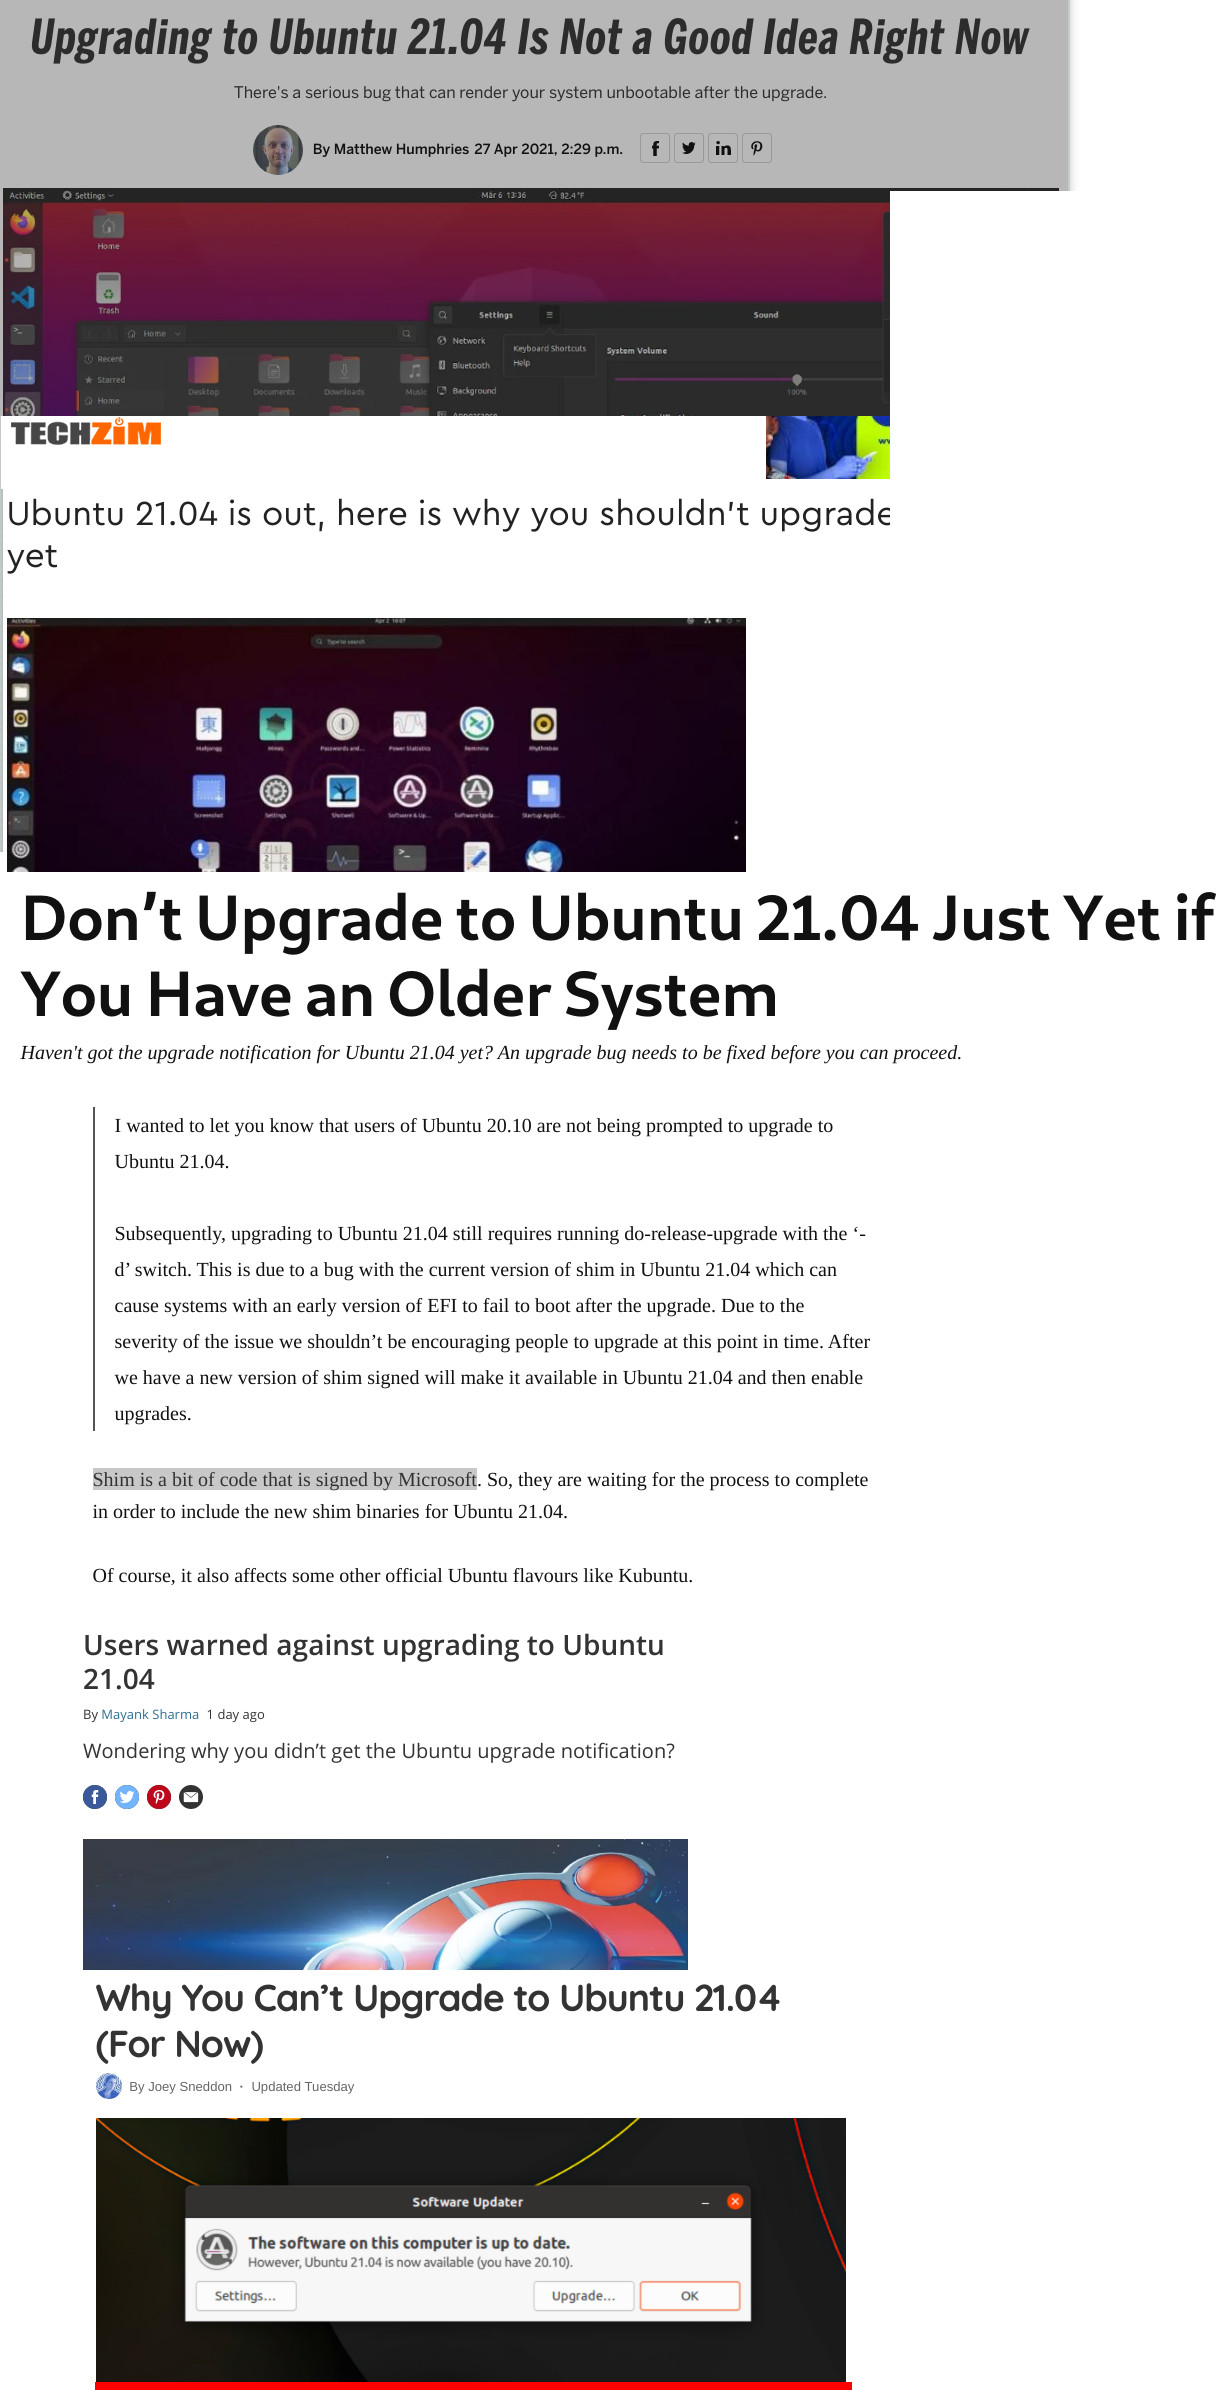 You cannot upgrade Ubuntu